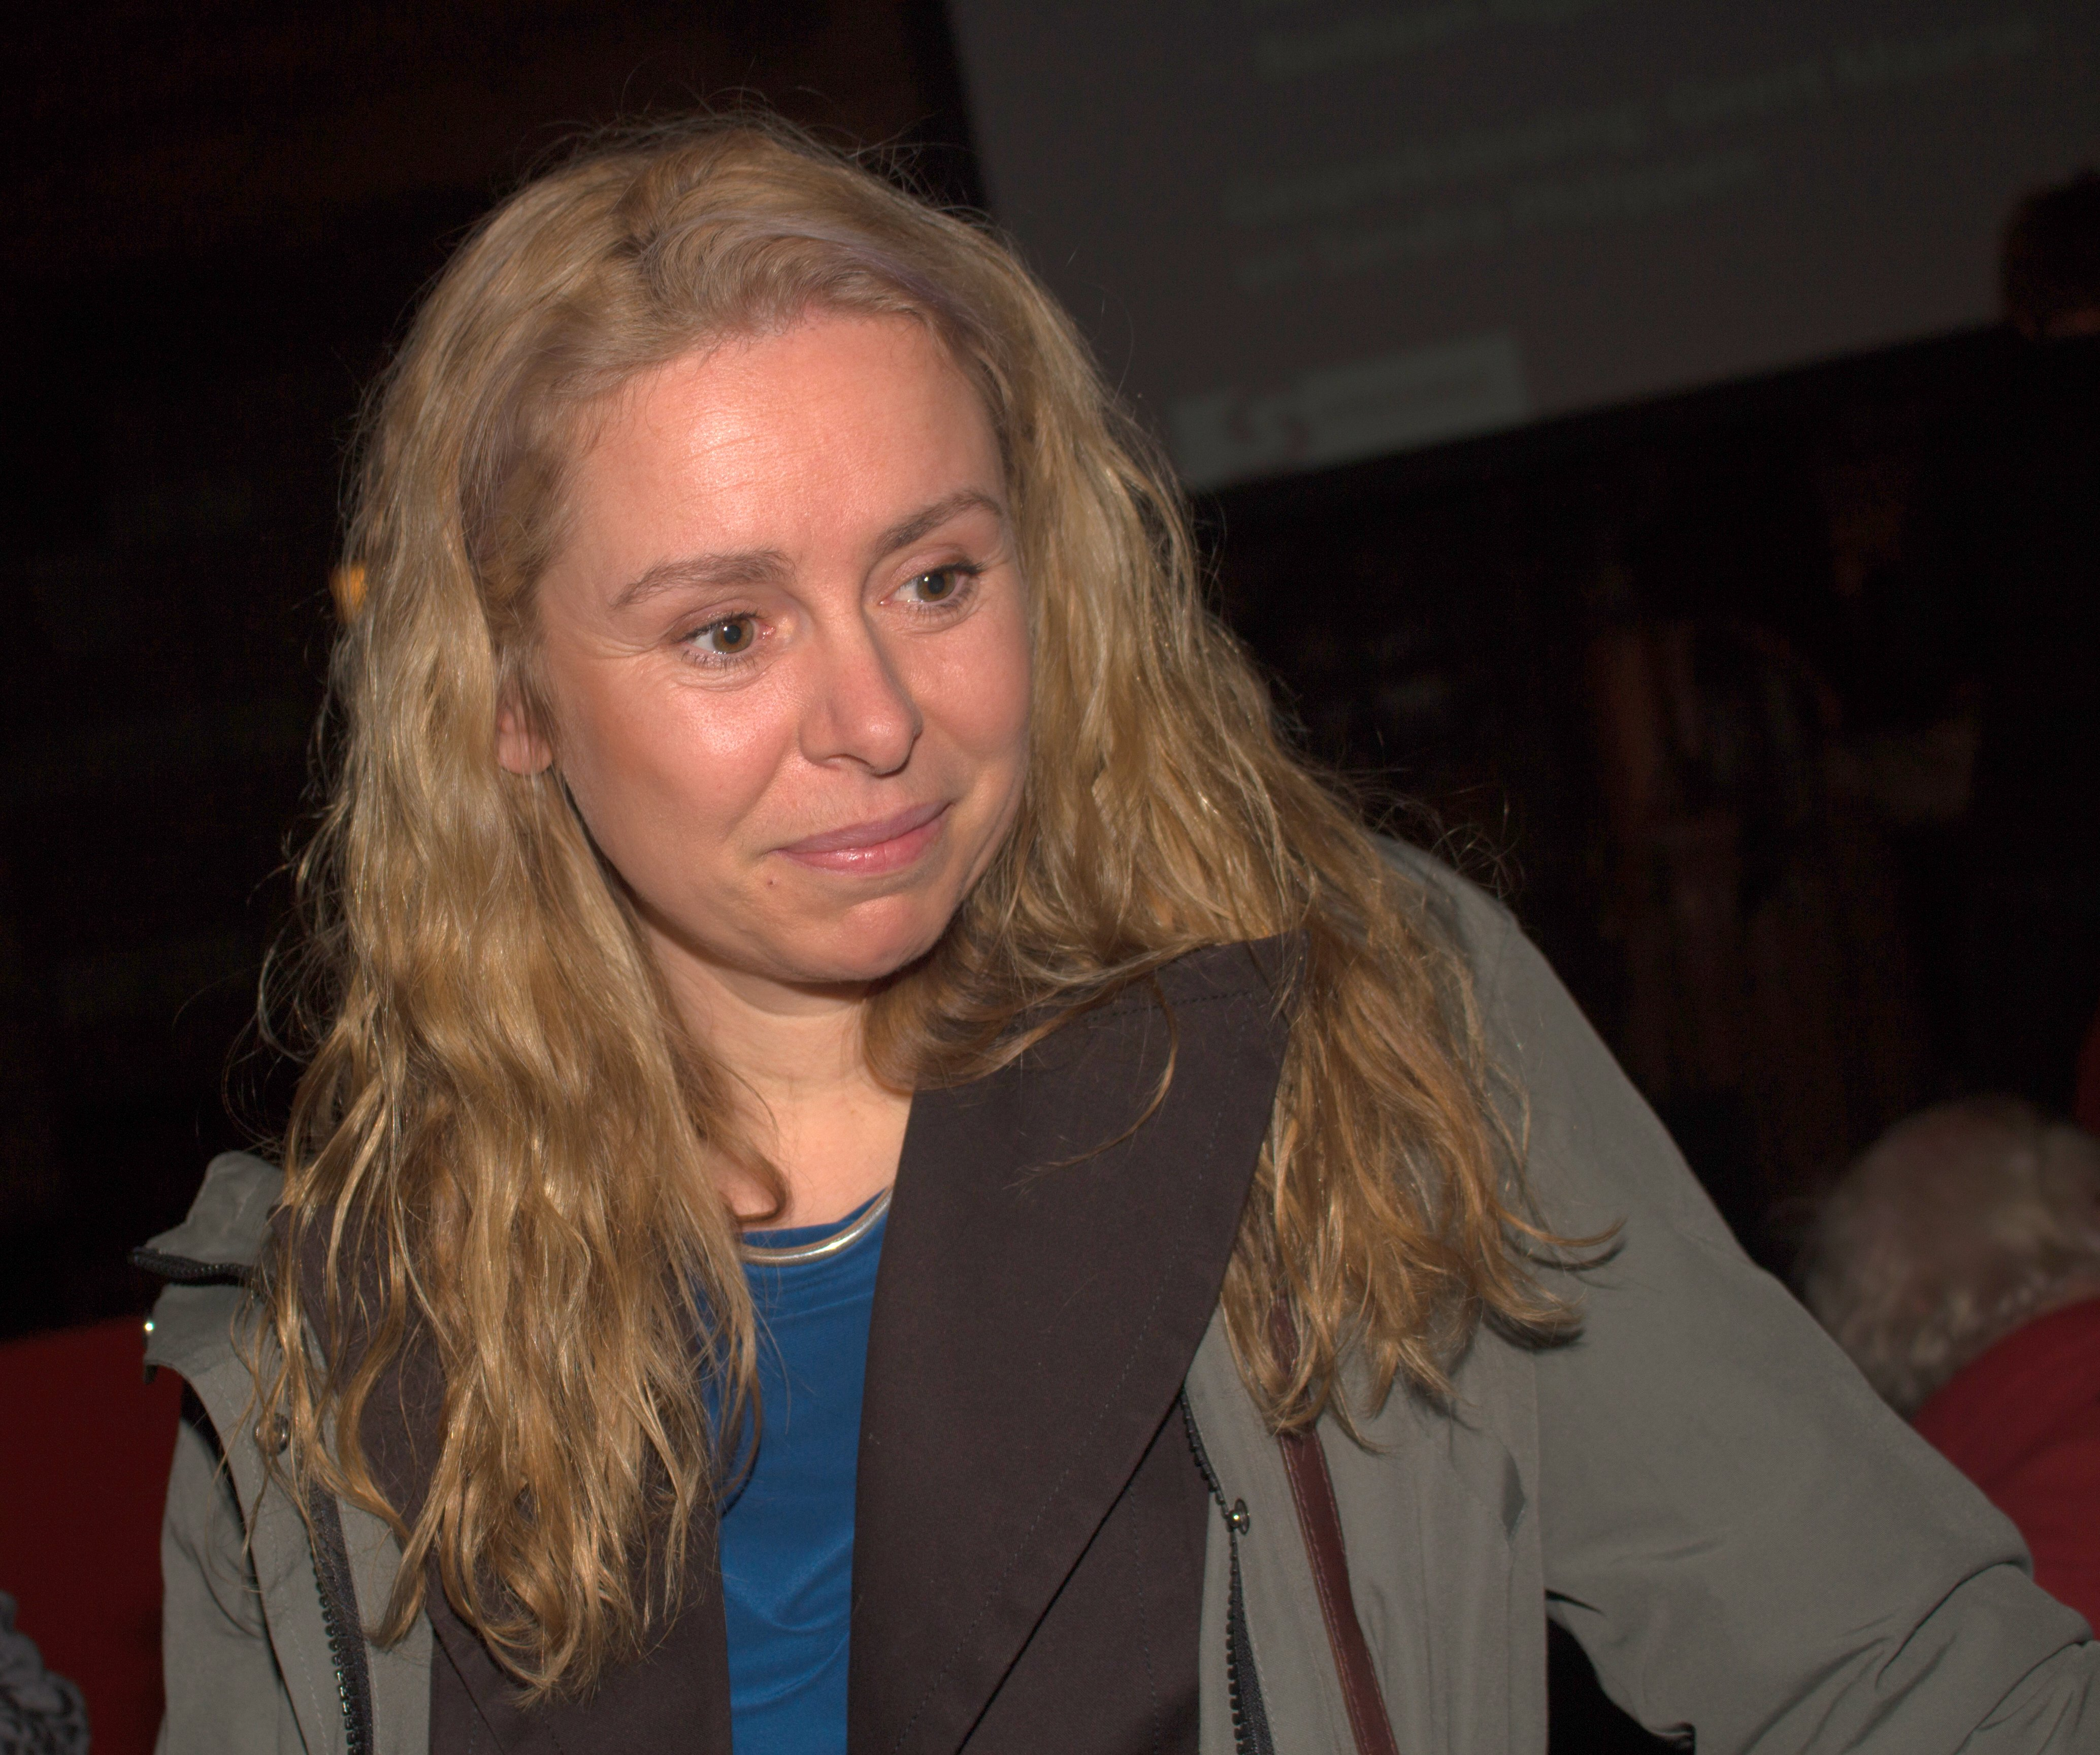 The 45-year old daughter of father (?) and mother(?) Sunny Bergman in 2018 photo. Sunny Bergman earned a  million dollar salary - leaving the net worth at 1 million in 2018